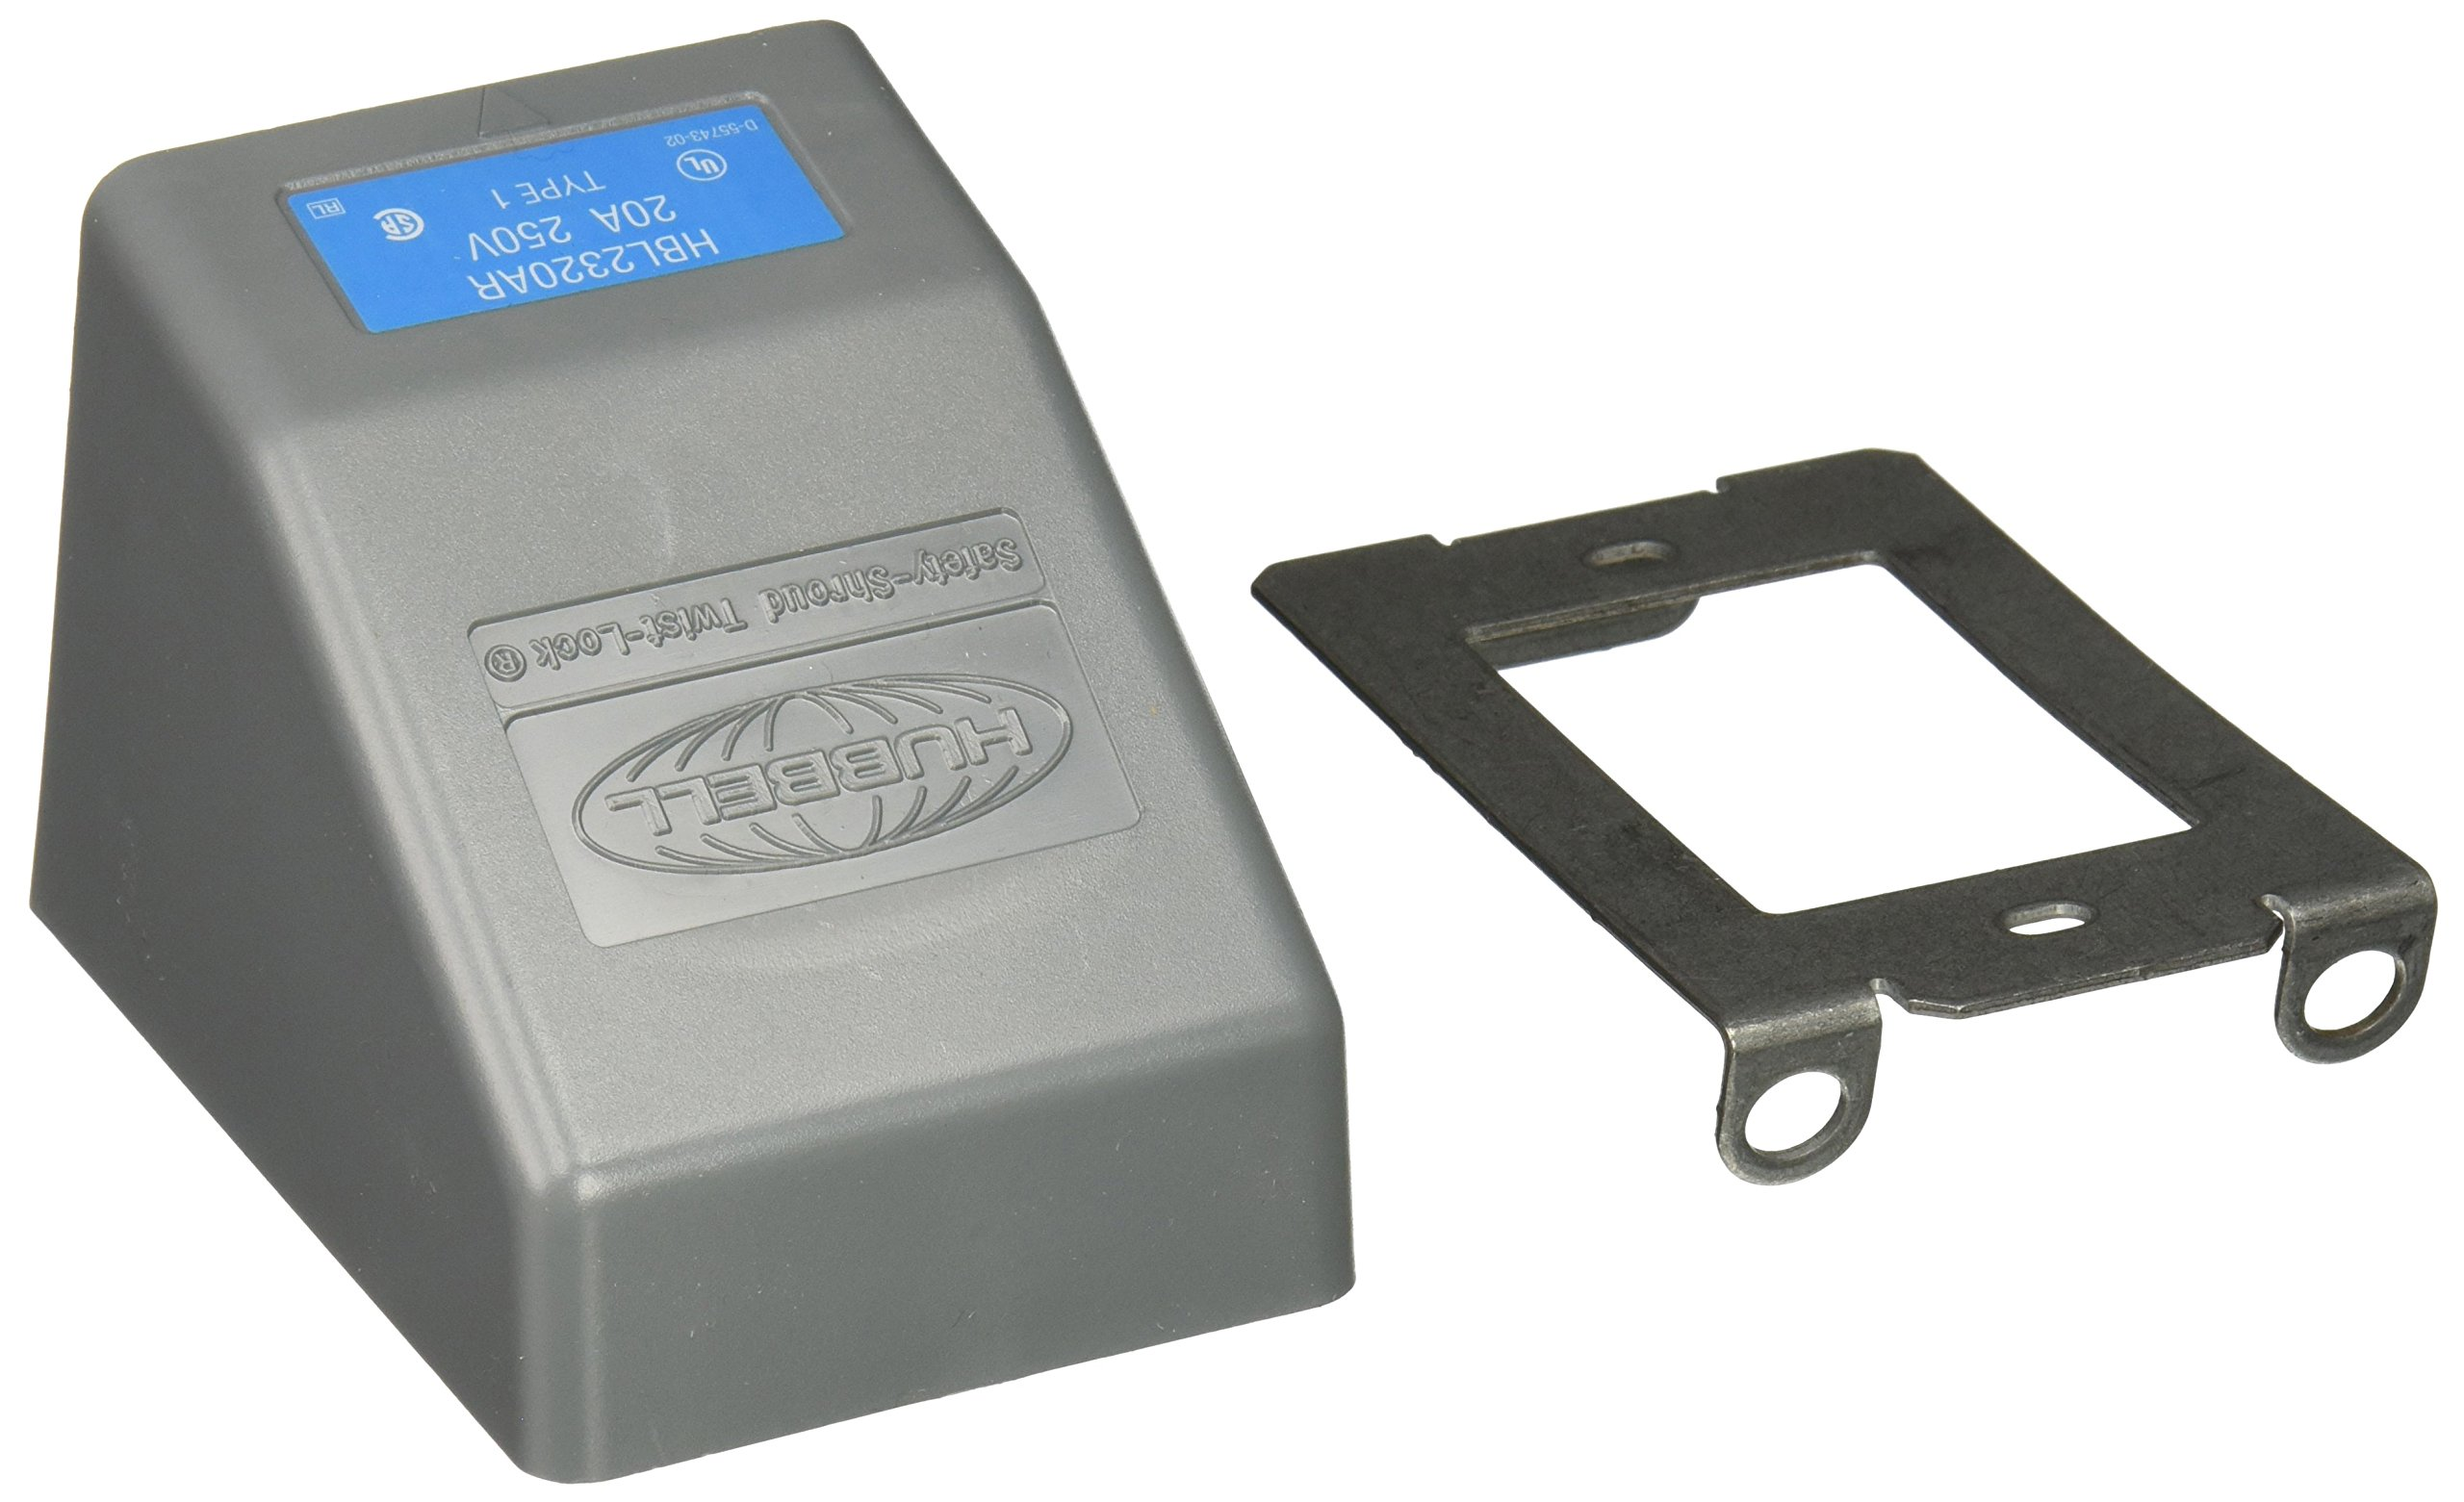 Hubbell HBL2320AR Locking Safety Shroud Receptacle, Angled Surface Mount, L6-20R, Gray by Hubbell (Image #2)